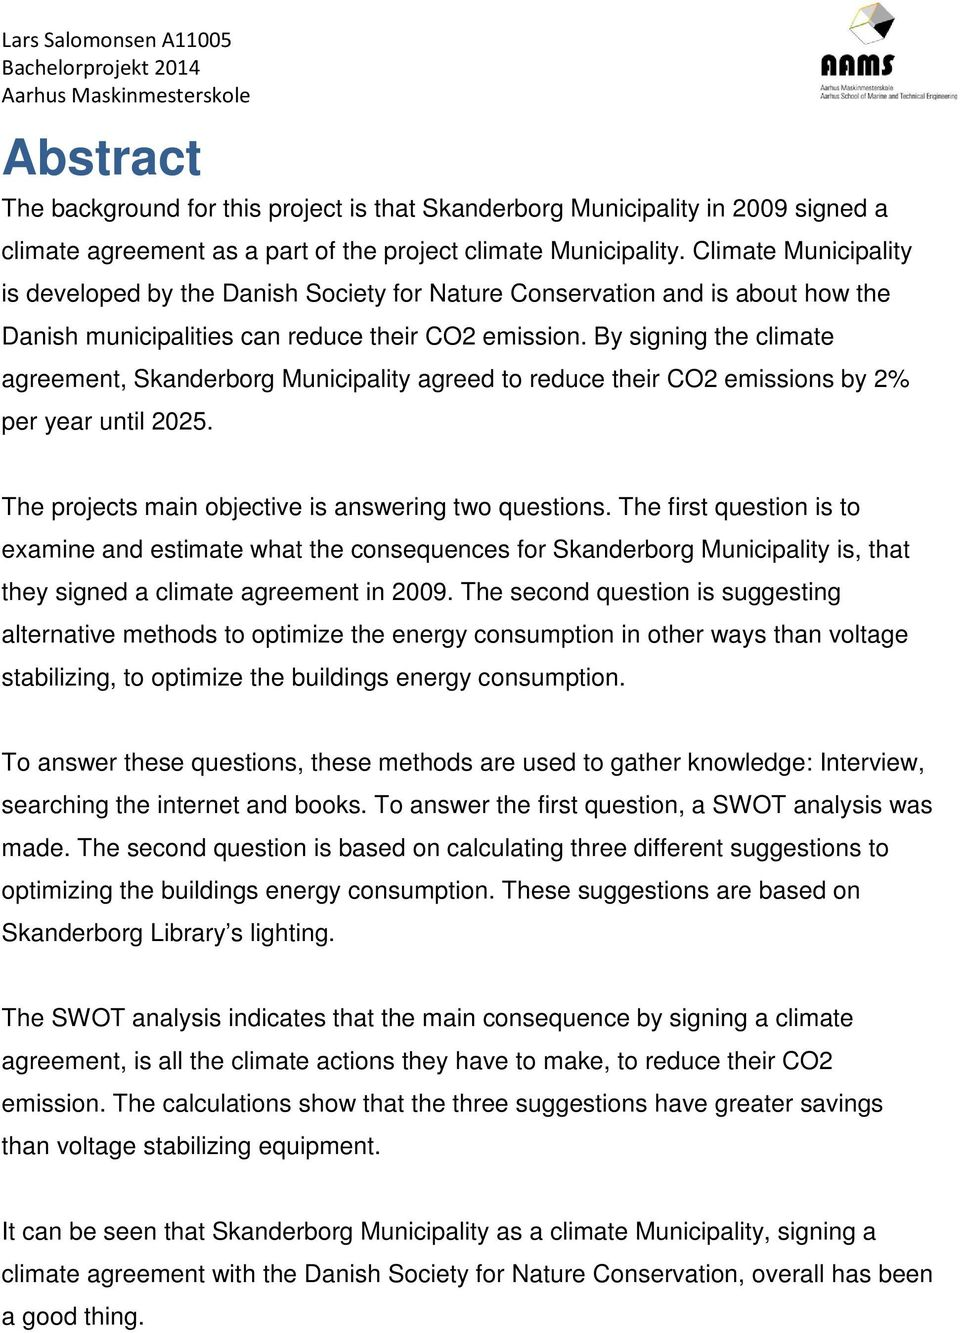 By signing the climate agreement, Skanderborg Municipality agreed to reduce their CO2 emissions by 2% per year until 2025. The projects main objective is answering two questions.